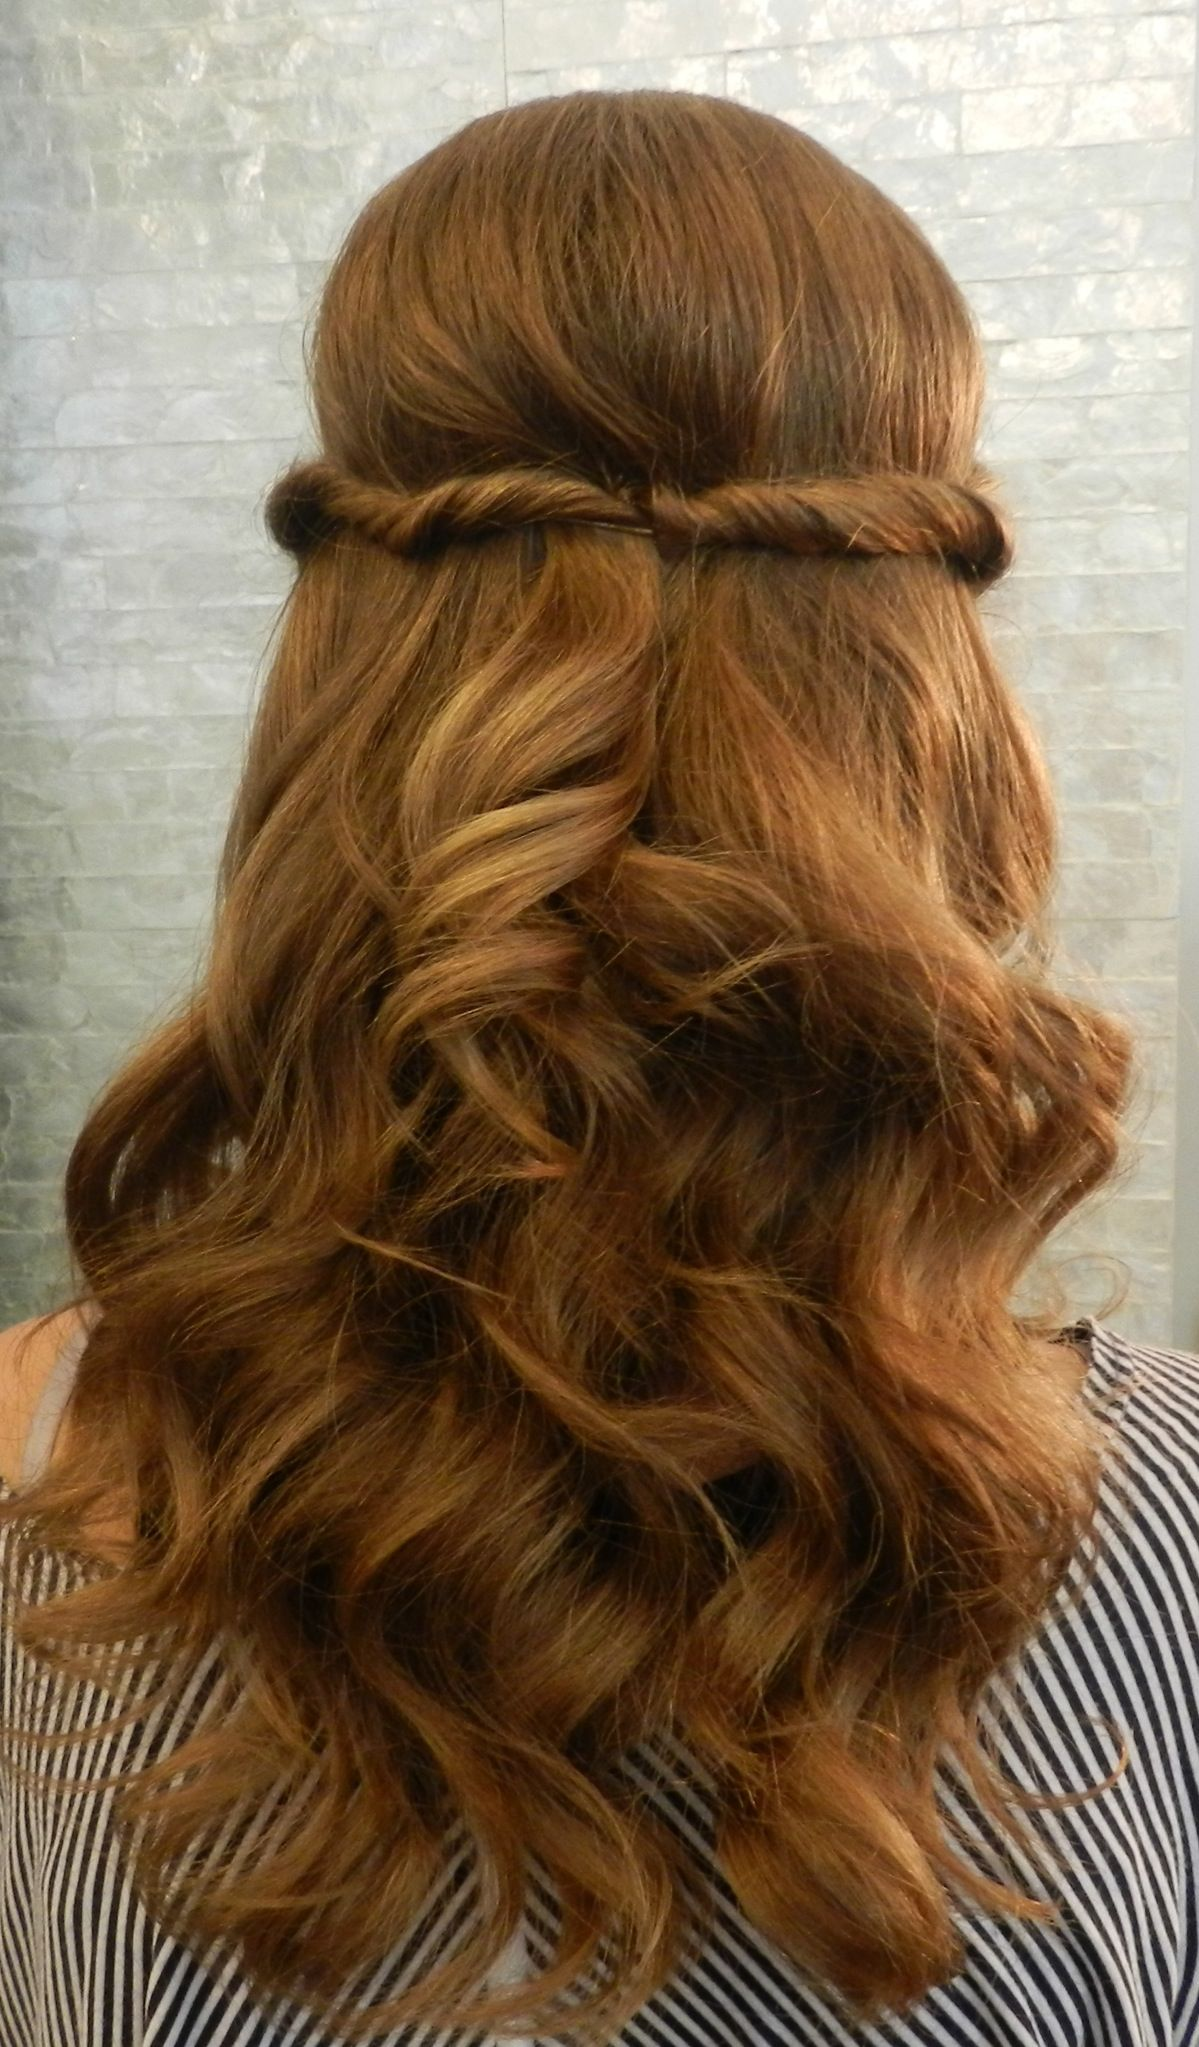 8th grade graduation hair, so cute! half up updo. - by #tinatobar